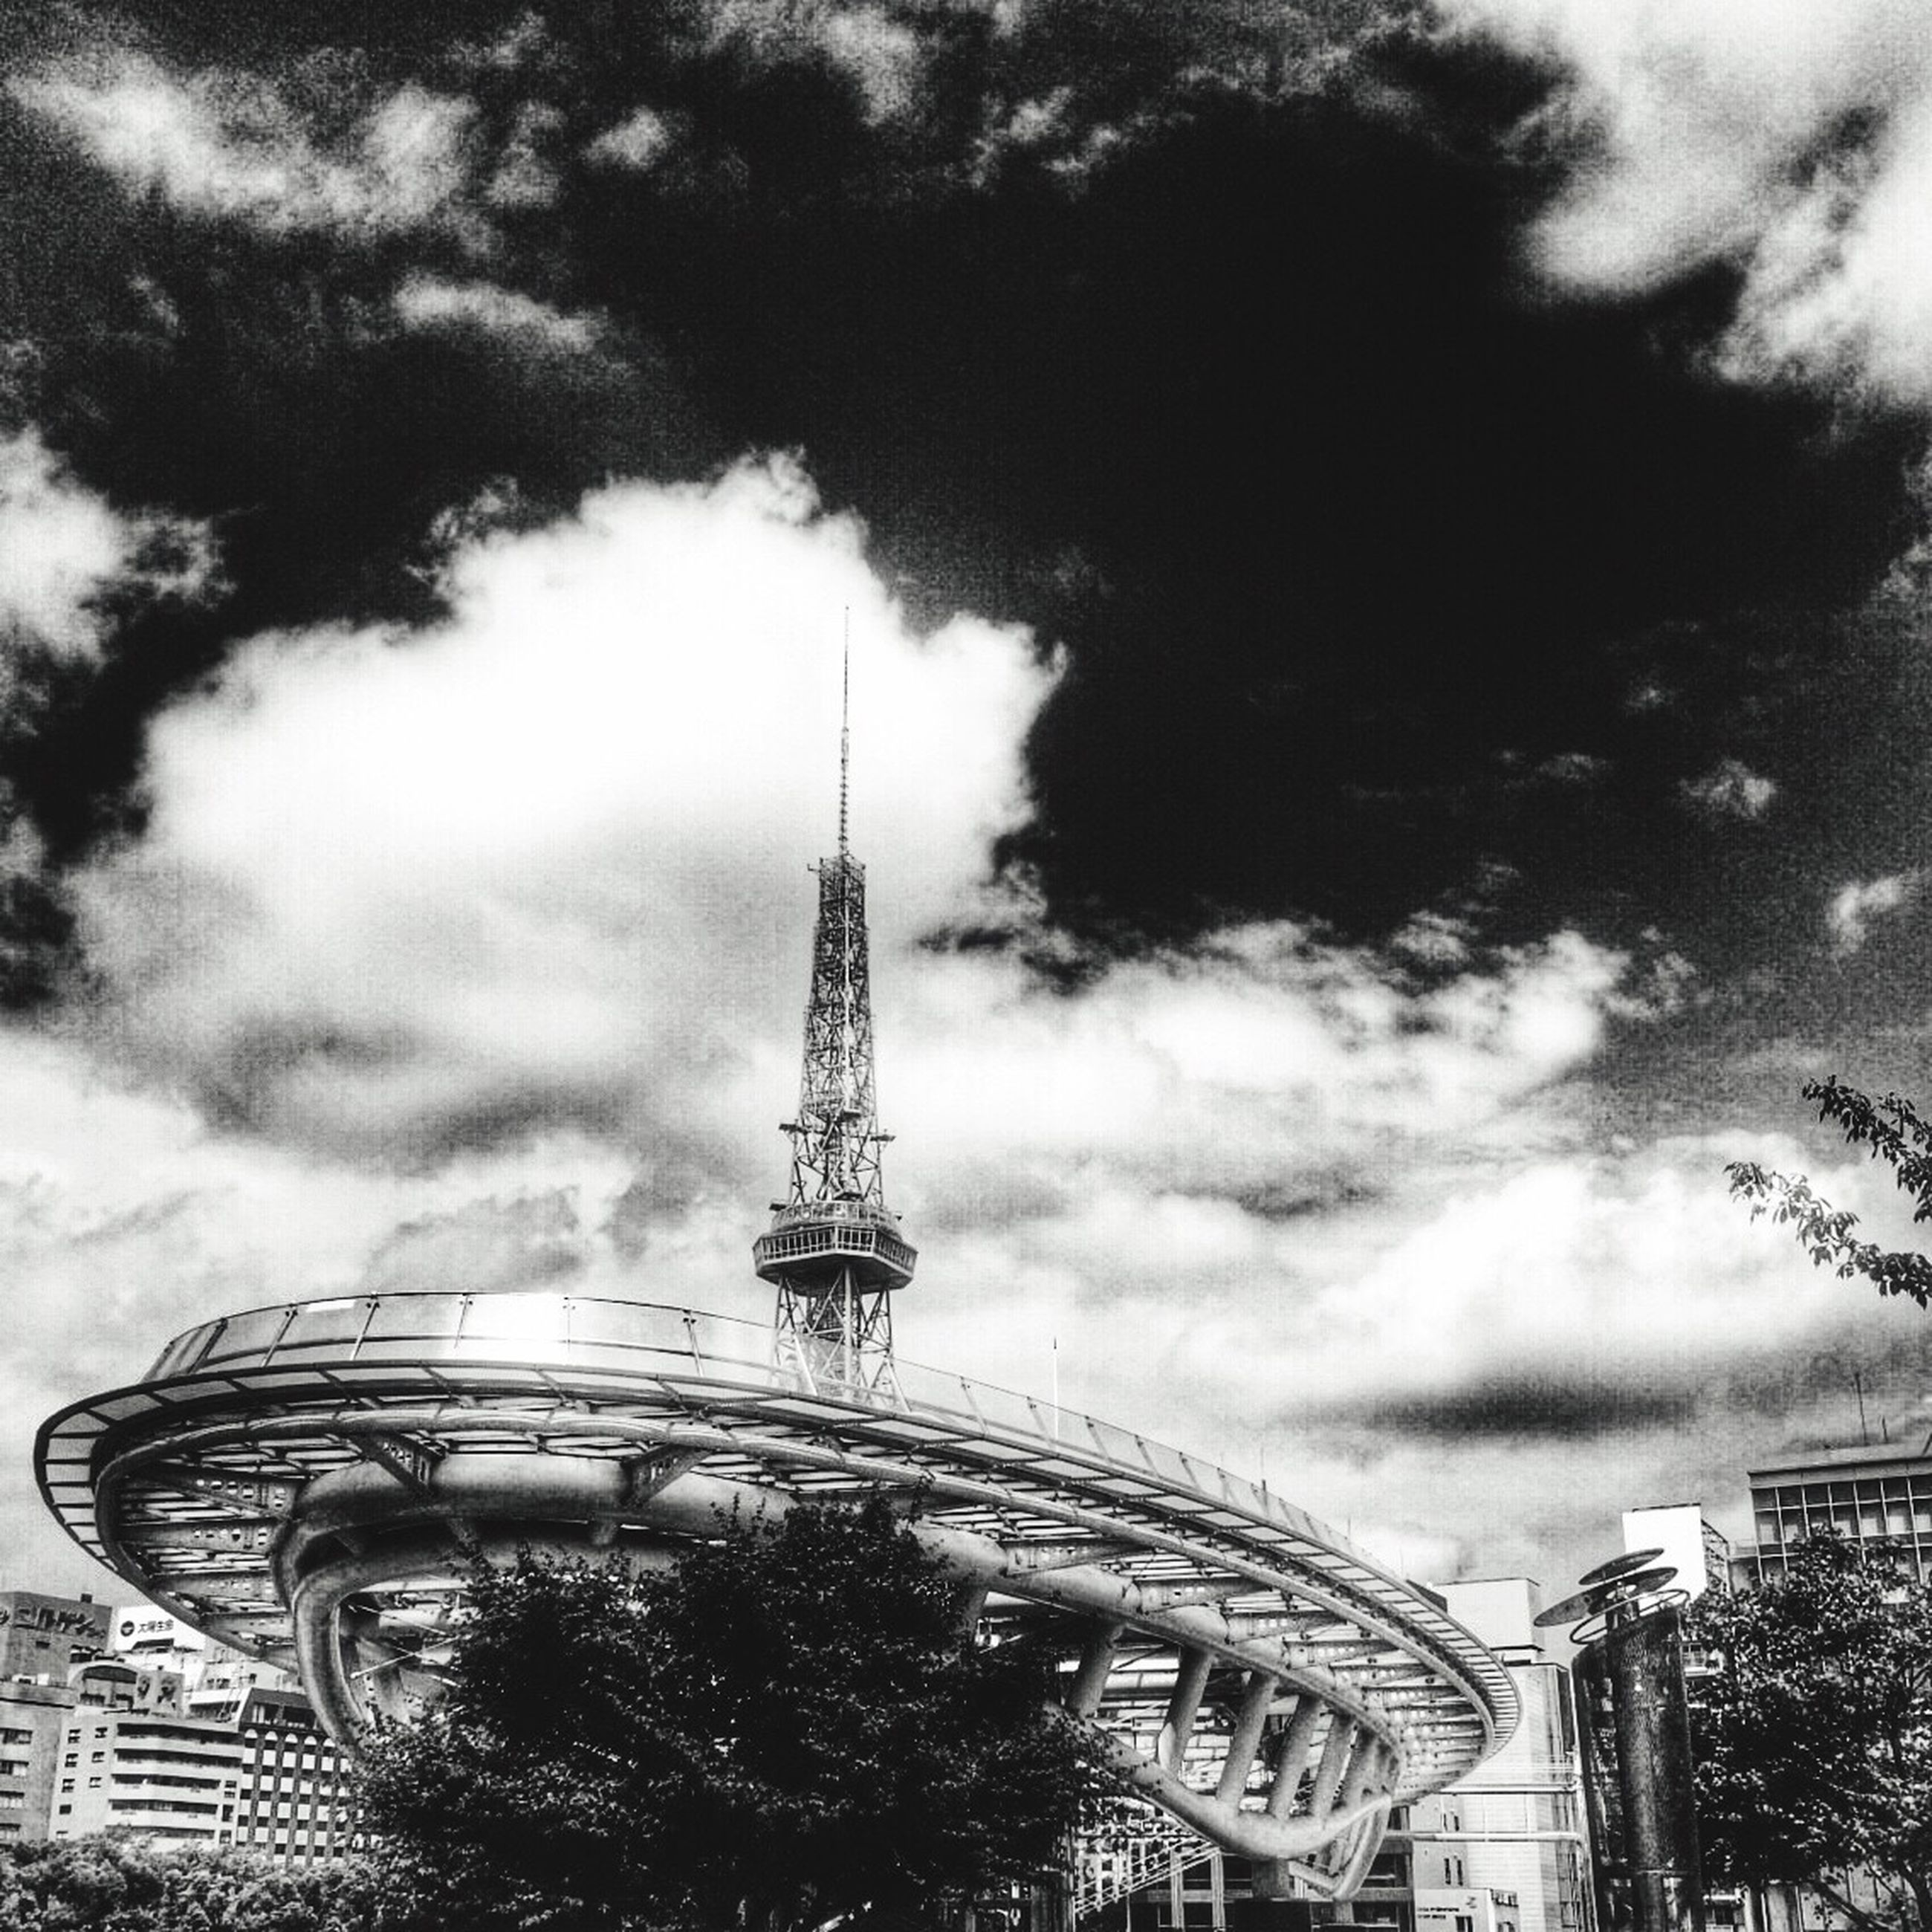 low angle view, sky, built structure, architecture, tower, cloud - sky, building exterior, cloudy, tall - high, travel destinations, famous place, international landmark, capital cities, tree, tourism, amusement park, travel, amusement park ride, city, communications tower